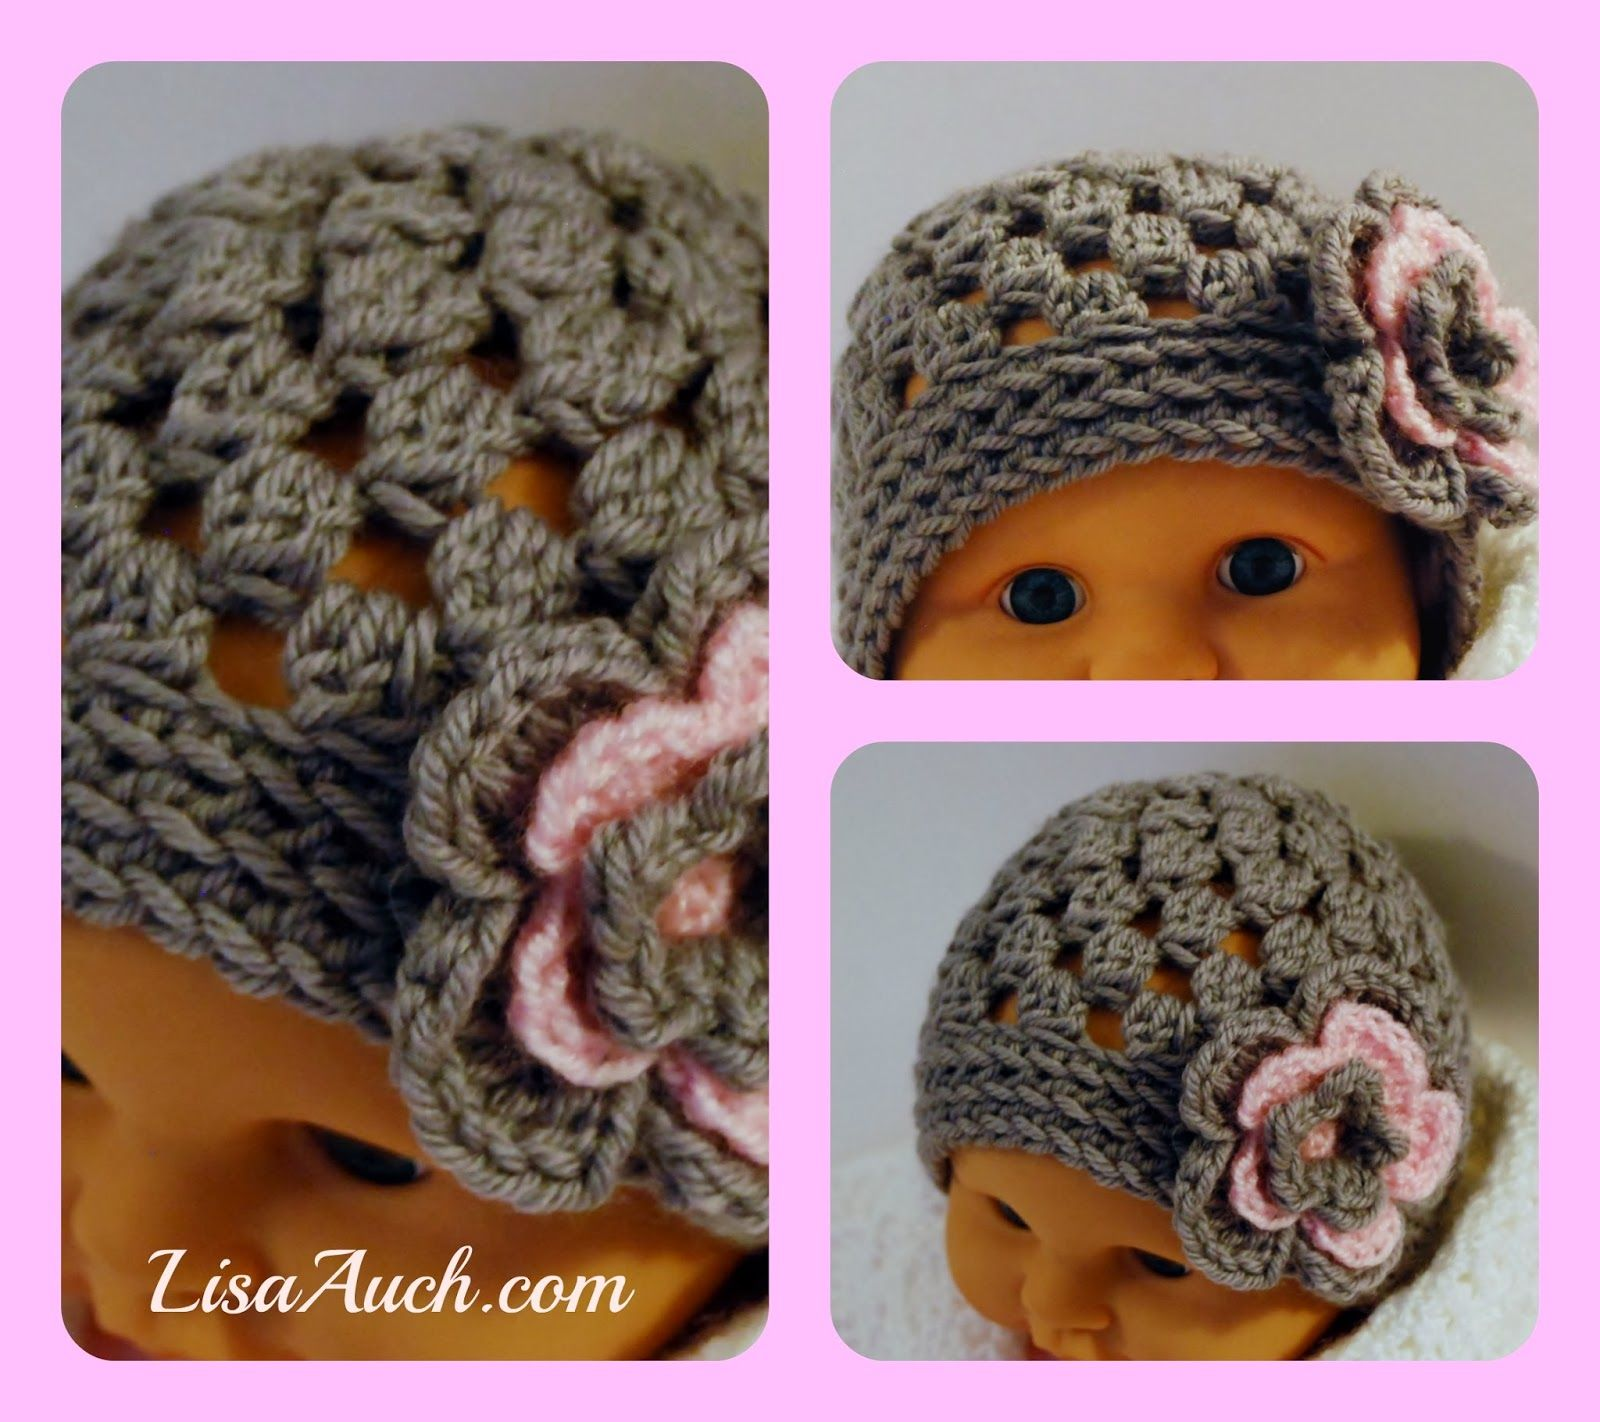 Crochet patterns free easy baby crochet hat pattern free crochet crochet patterns free easy baby crochet hat pattern free crochet hat patterns bankloansurffo Images